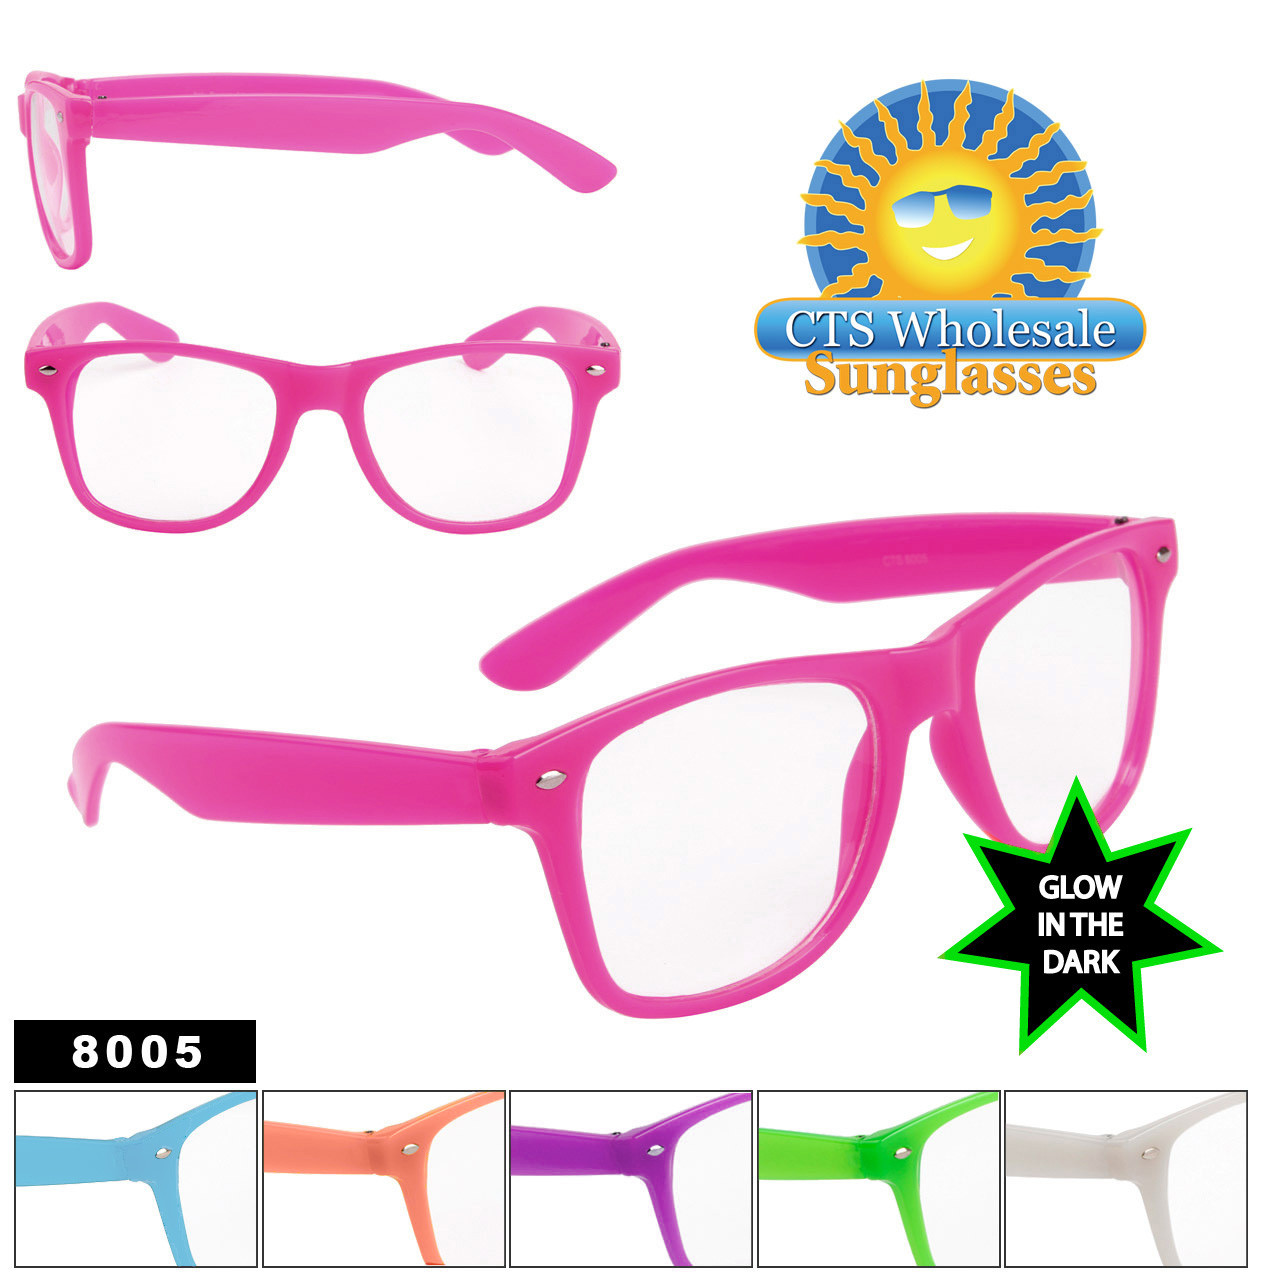 Glow In The Dark Sunglasses - Clear Lens California Classics - Style # 8005